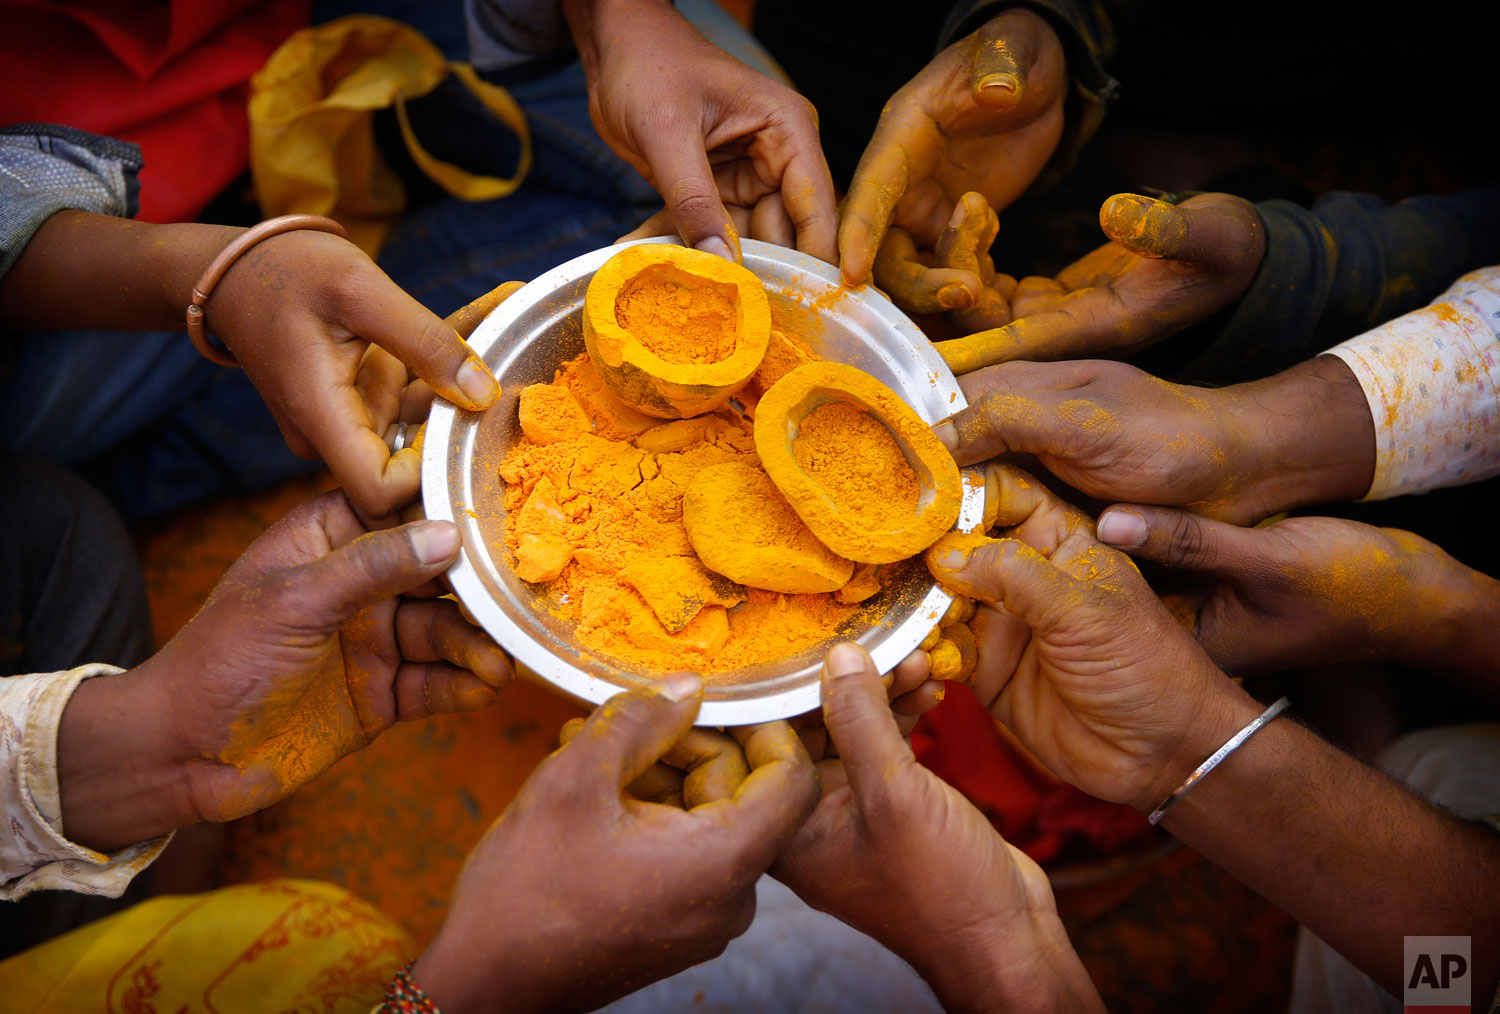 Devotees hold a plate with turmeric as they offer prayers during the celebration of the Bhandara Festival, or the Festival of Turmeric, at the Jejuri temple in Pune district, Maharashtra state, India. During the festival, devotees use the golden powder to worship the deity Lord Khandoba, widely known as a descendant of the sun, and to celebrate his victory over the demons Mani and Malla. (AP Photo/Rafiq Maqbool)